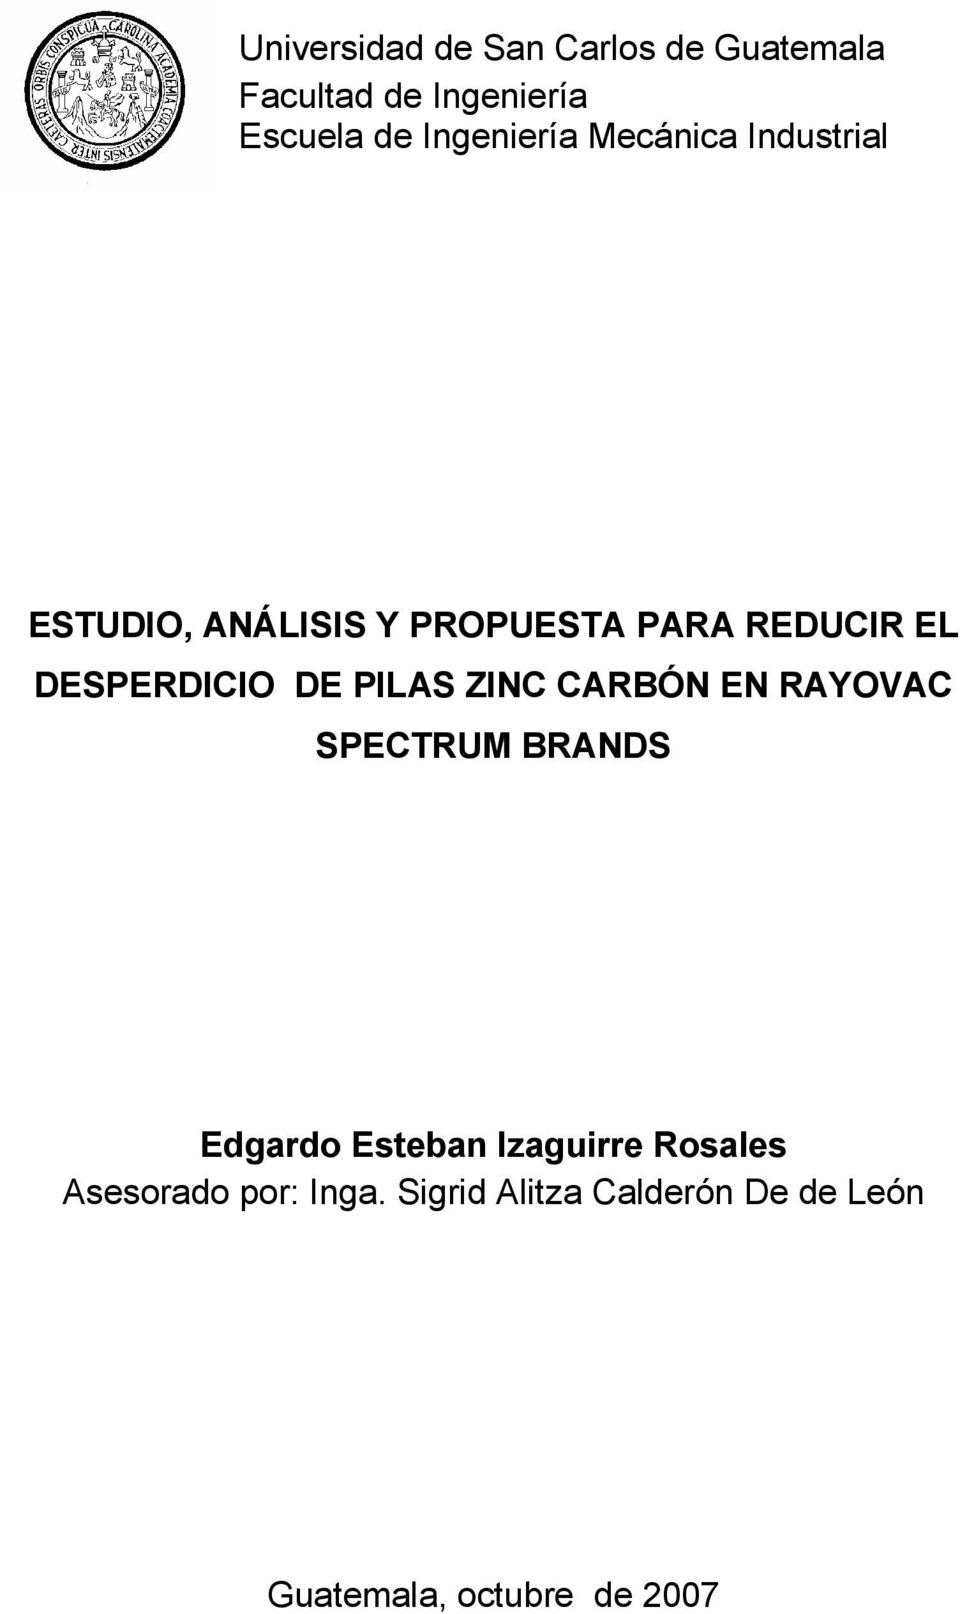 DESPERDICIO DE PILAS ZINC CARBÓN EN RAYOVAC SPECTRUM BRANDS Edgardo Esteban